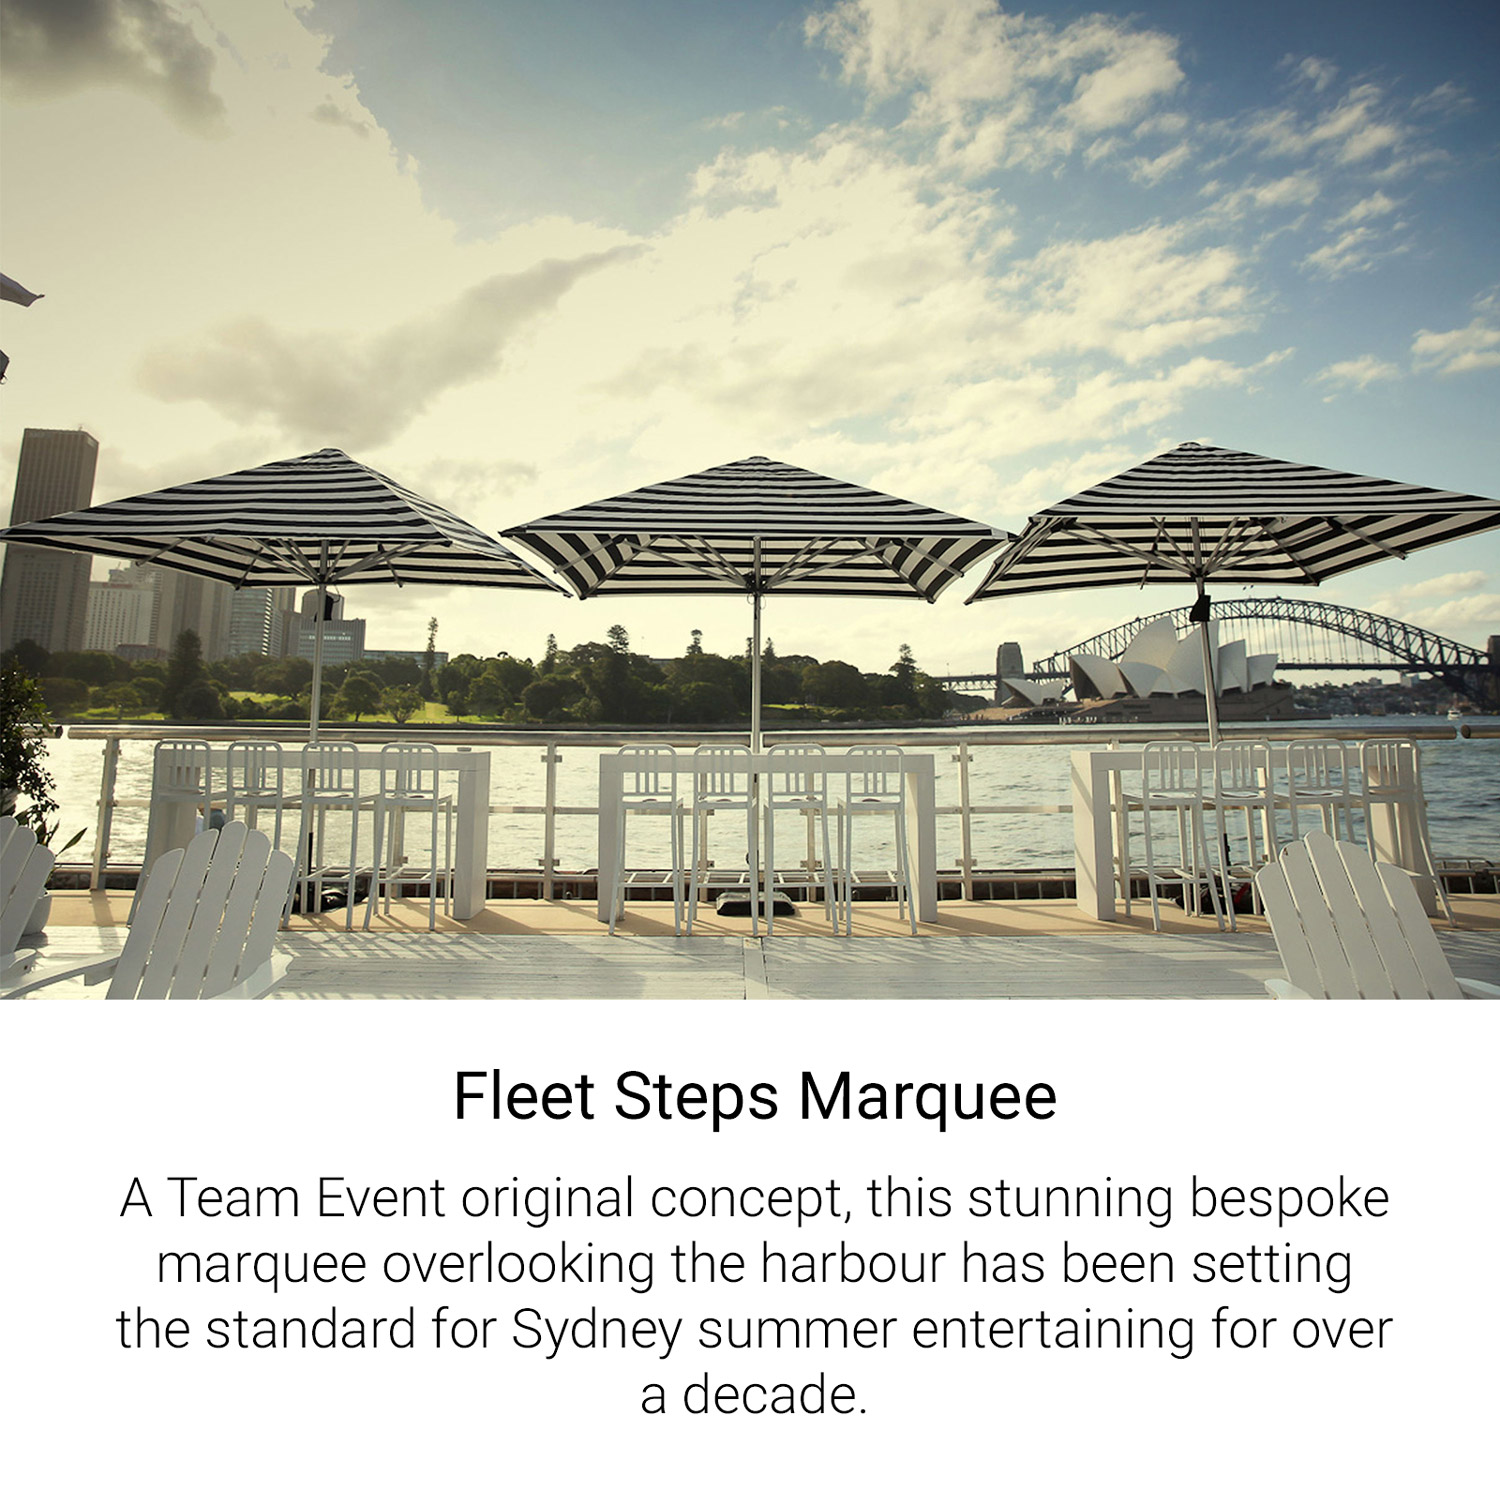 Fleet Steps Marquee